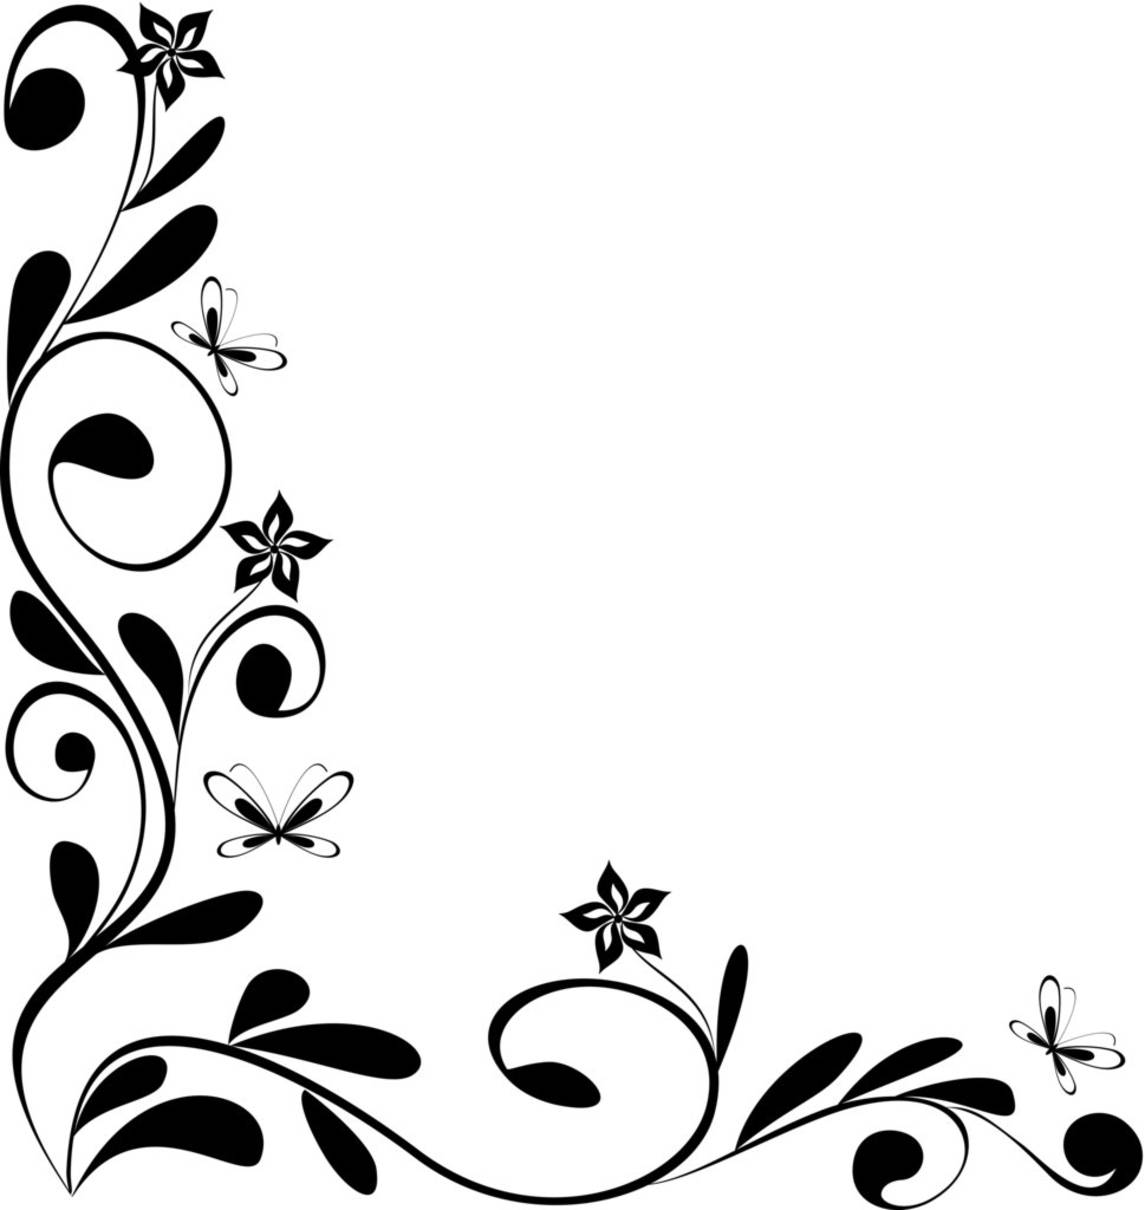 Png Flower Border Black Free Page Border Designs Flowers Black And White Download Free